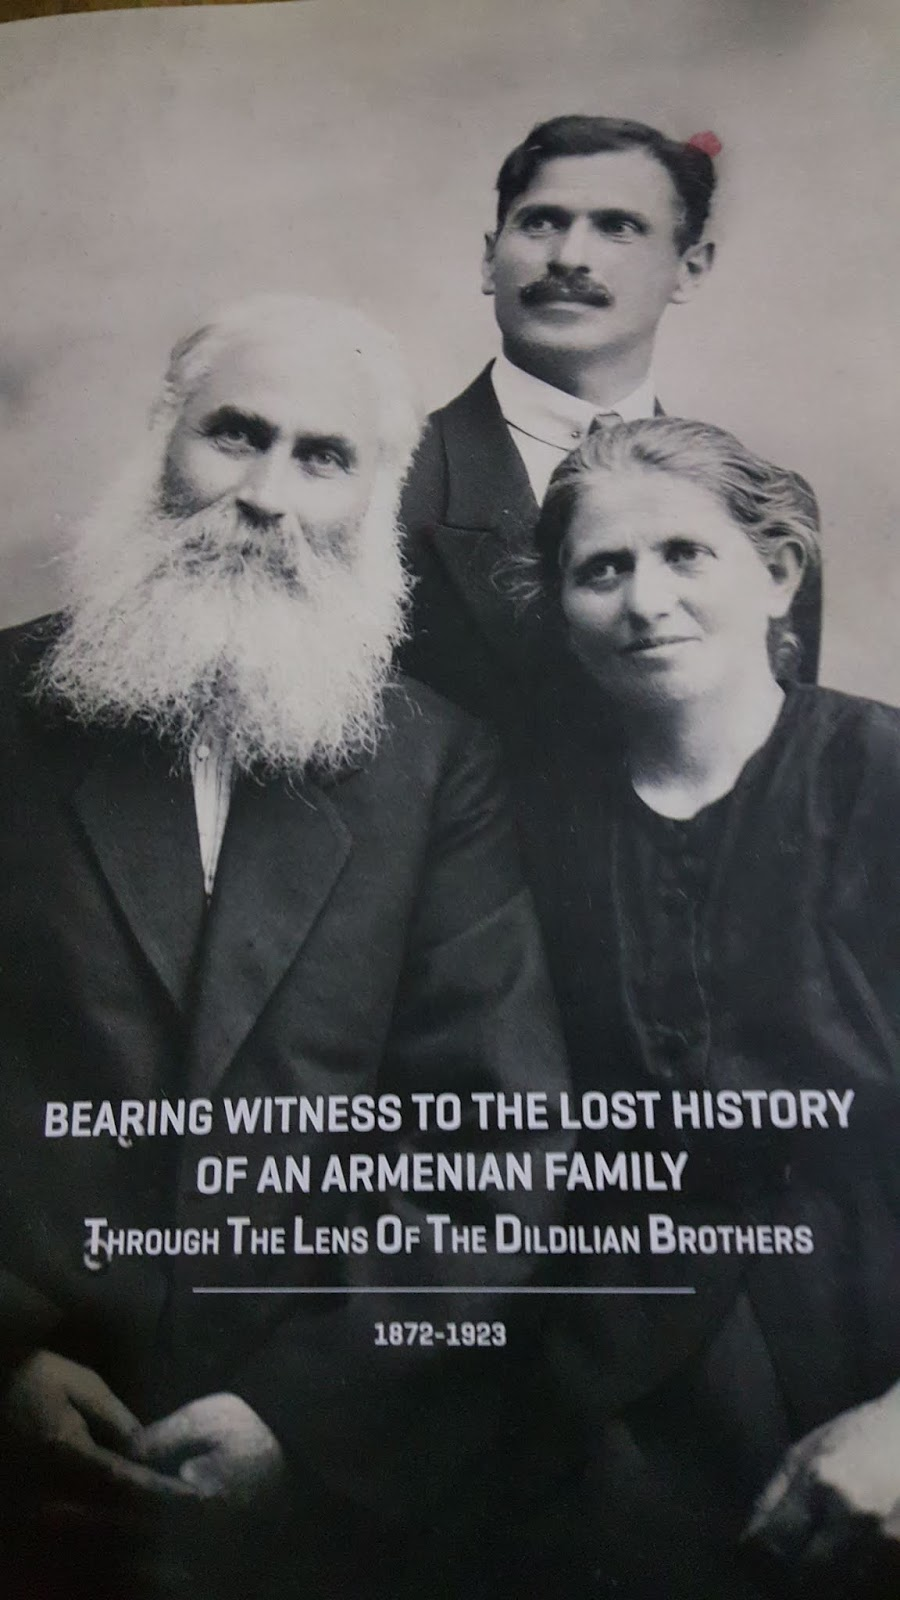 99th anniversary of the turkish war of independence and remembering two women from samsun sakine and mariam